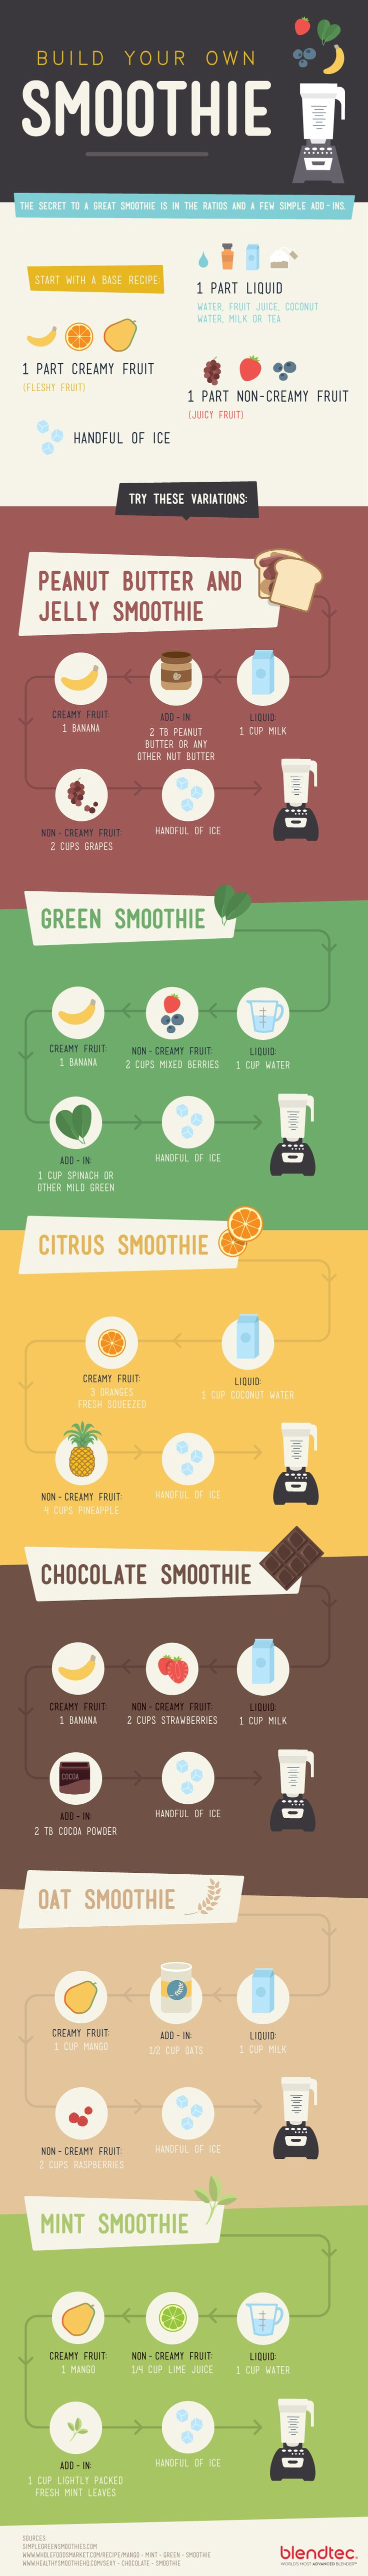 Smoothies are simple and quick to make. Click here to get six DIY smoothie recipes, that you can make in seconds in your Blendtec blender.